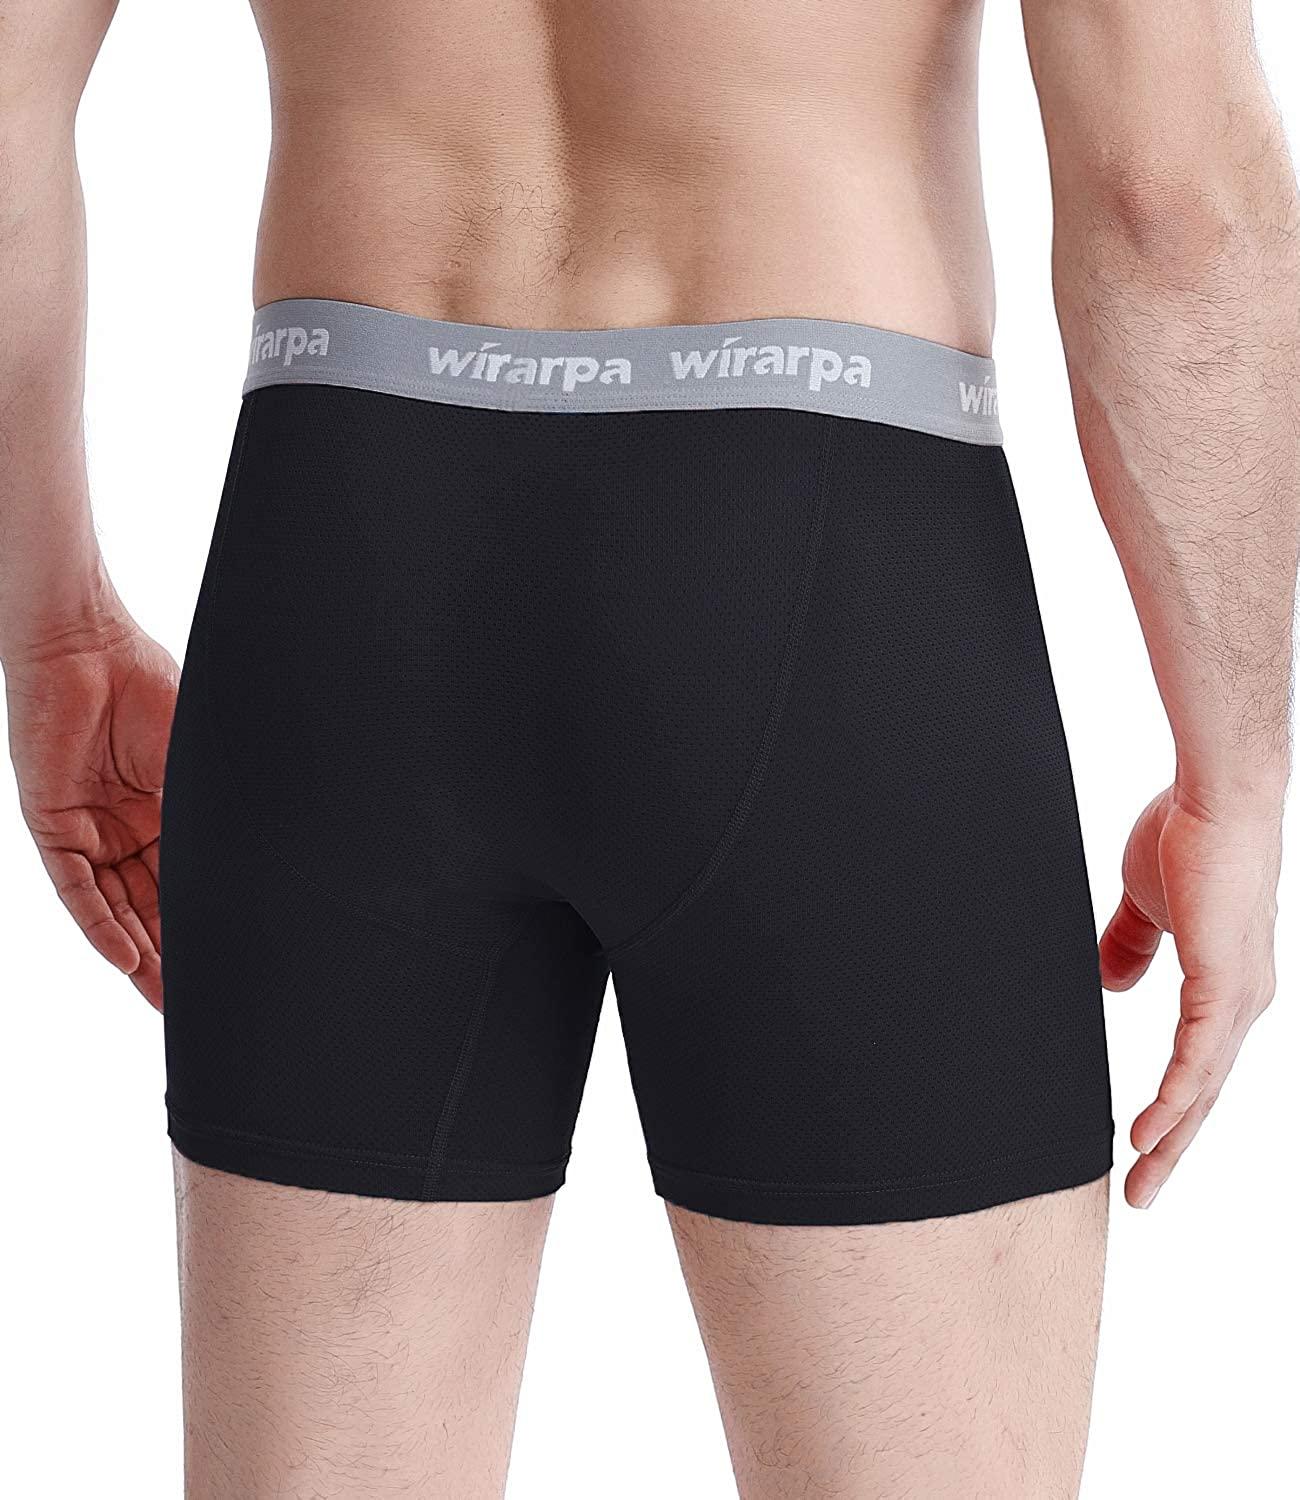 wirarpa Mens Cool Mesh Boxer Briefs Soft Breathable Underwear Tag-Free Quick Dry 4 Pack